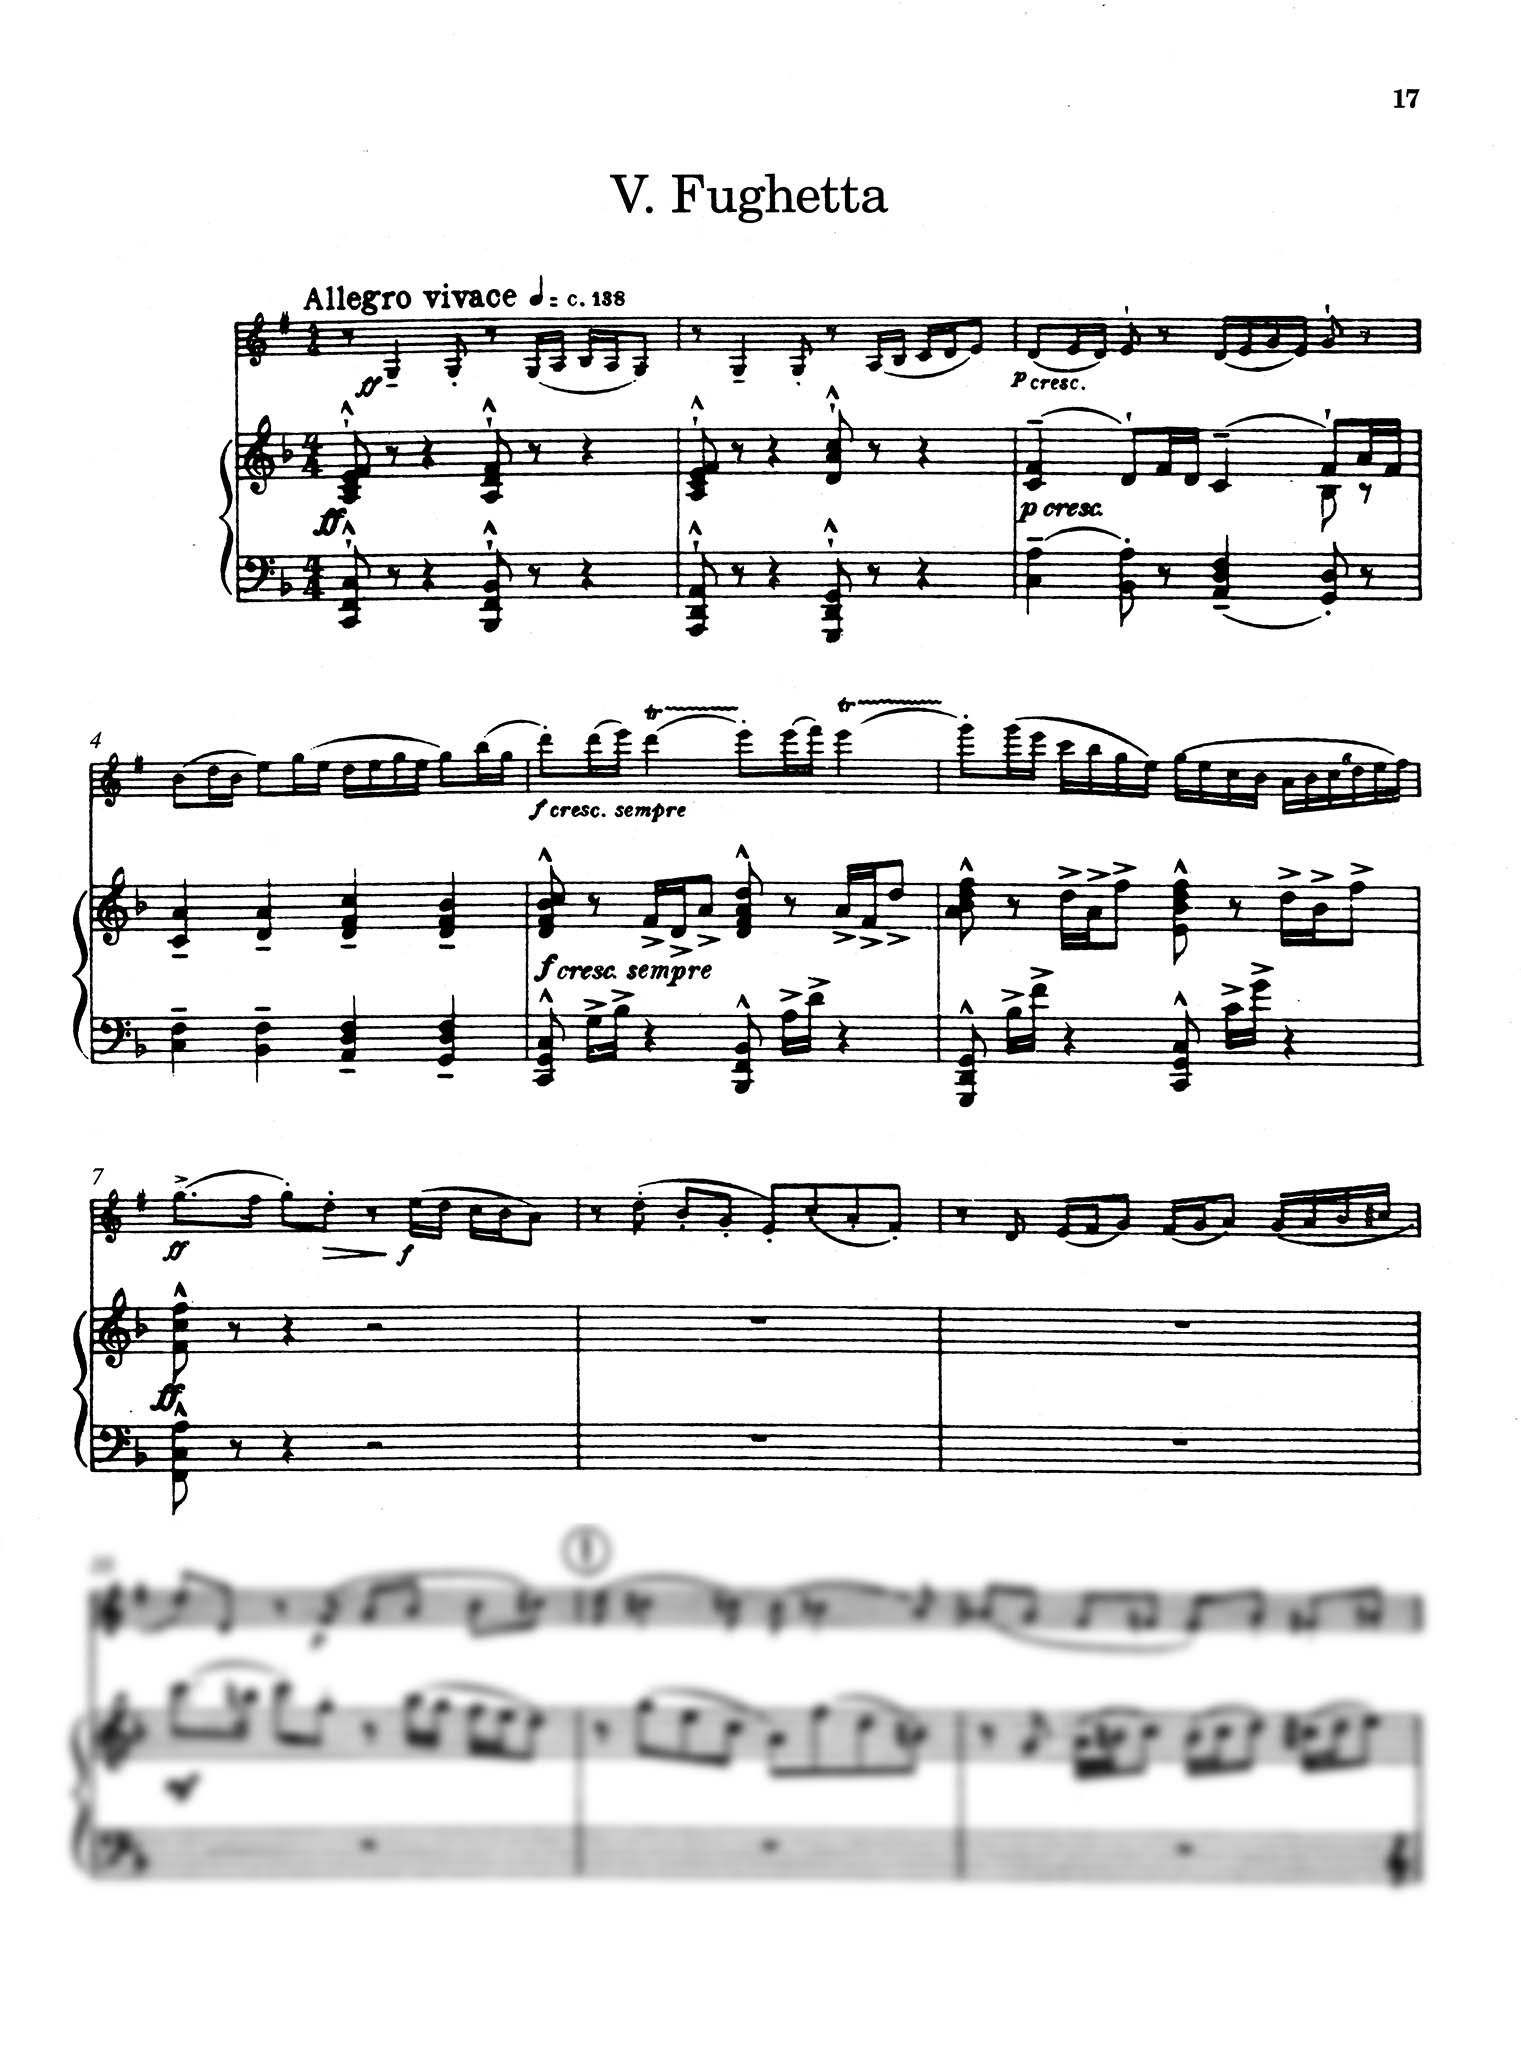 Five Bagatelles, Op. 23 - Movement 5